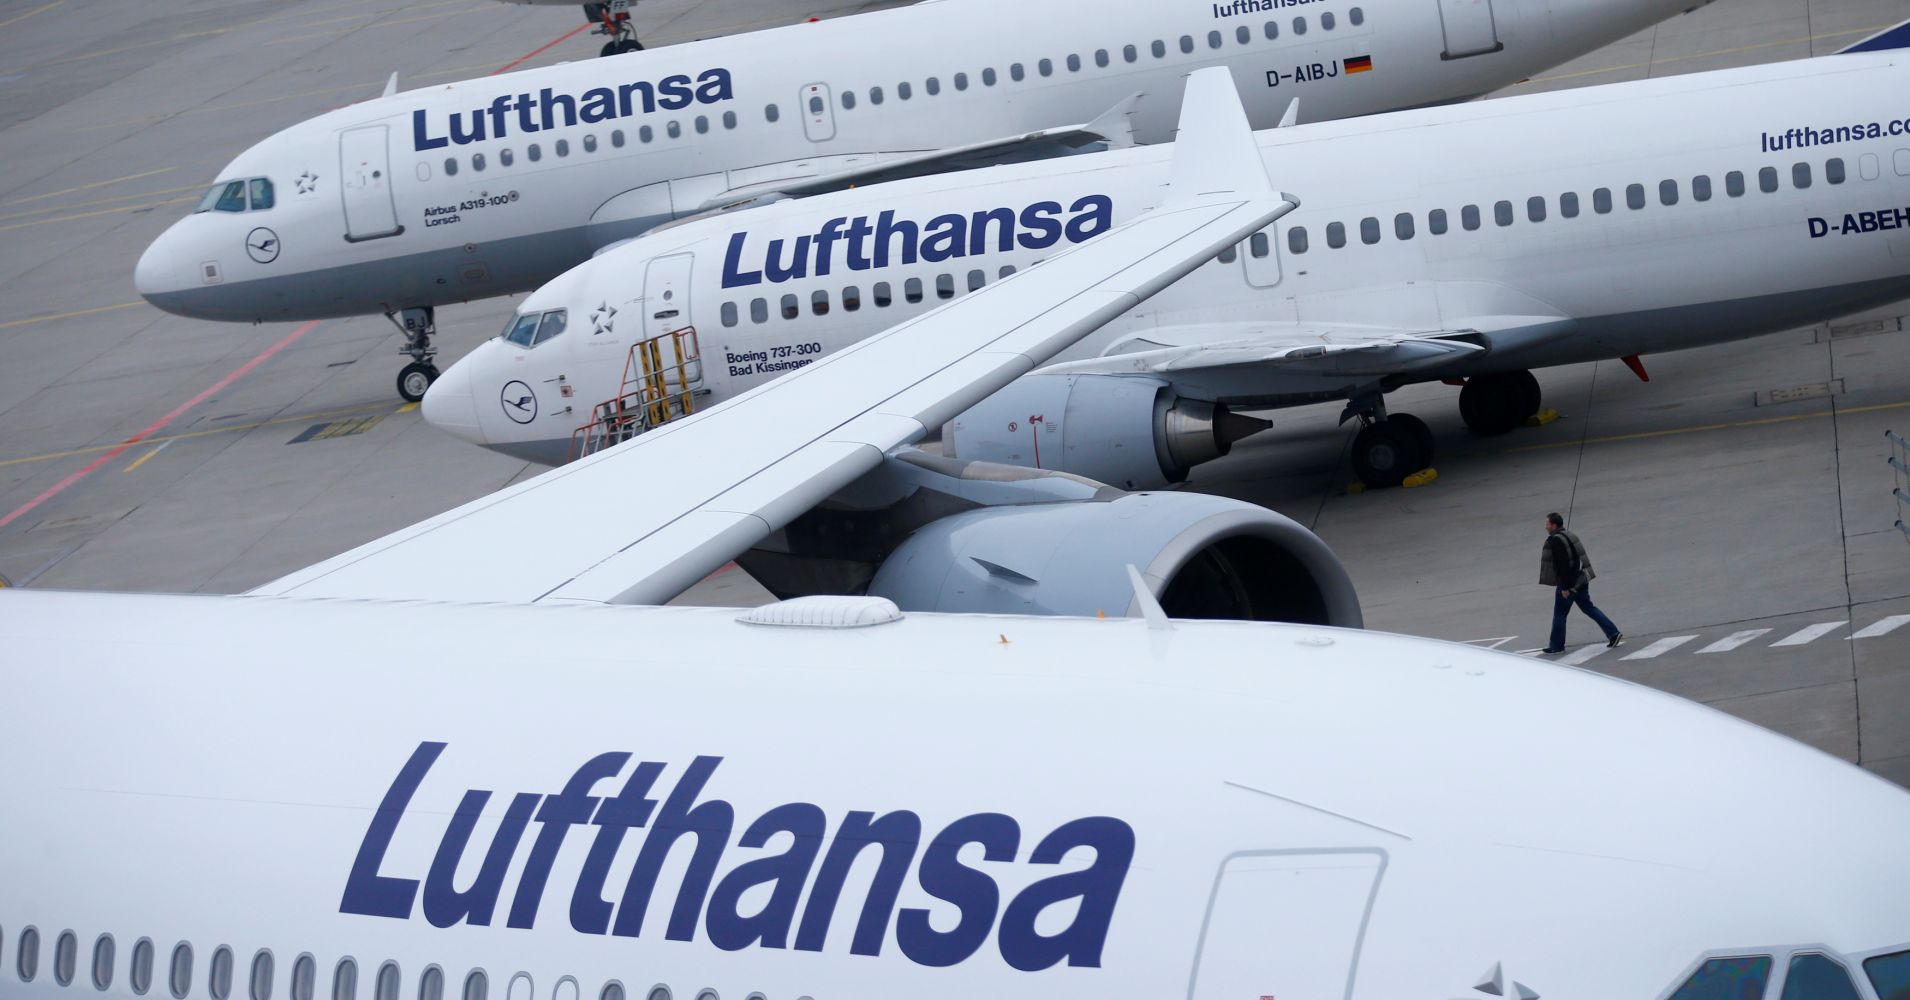 Lufthansa airplanes are parked on the tarmac at Frankfurt airport, Germany.